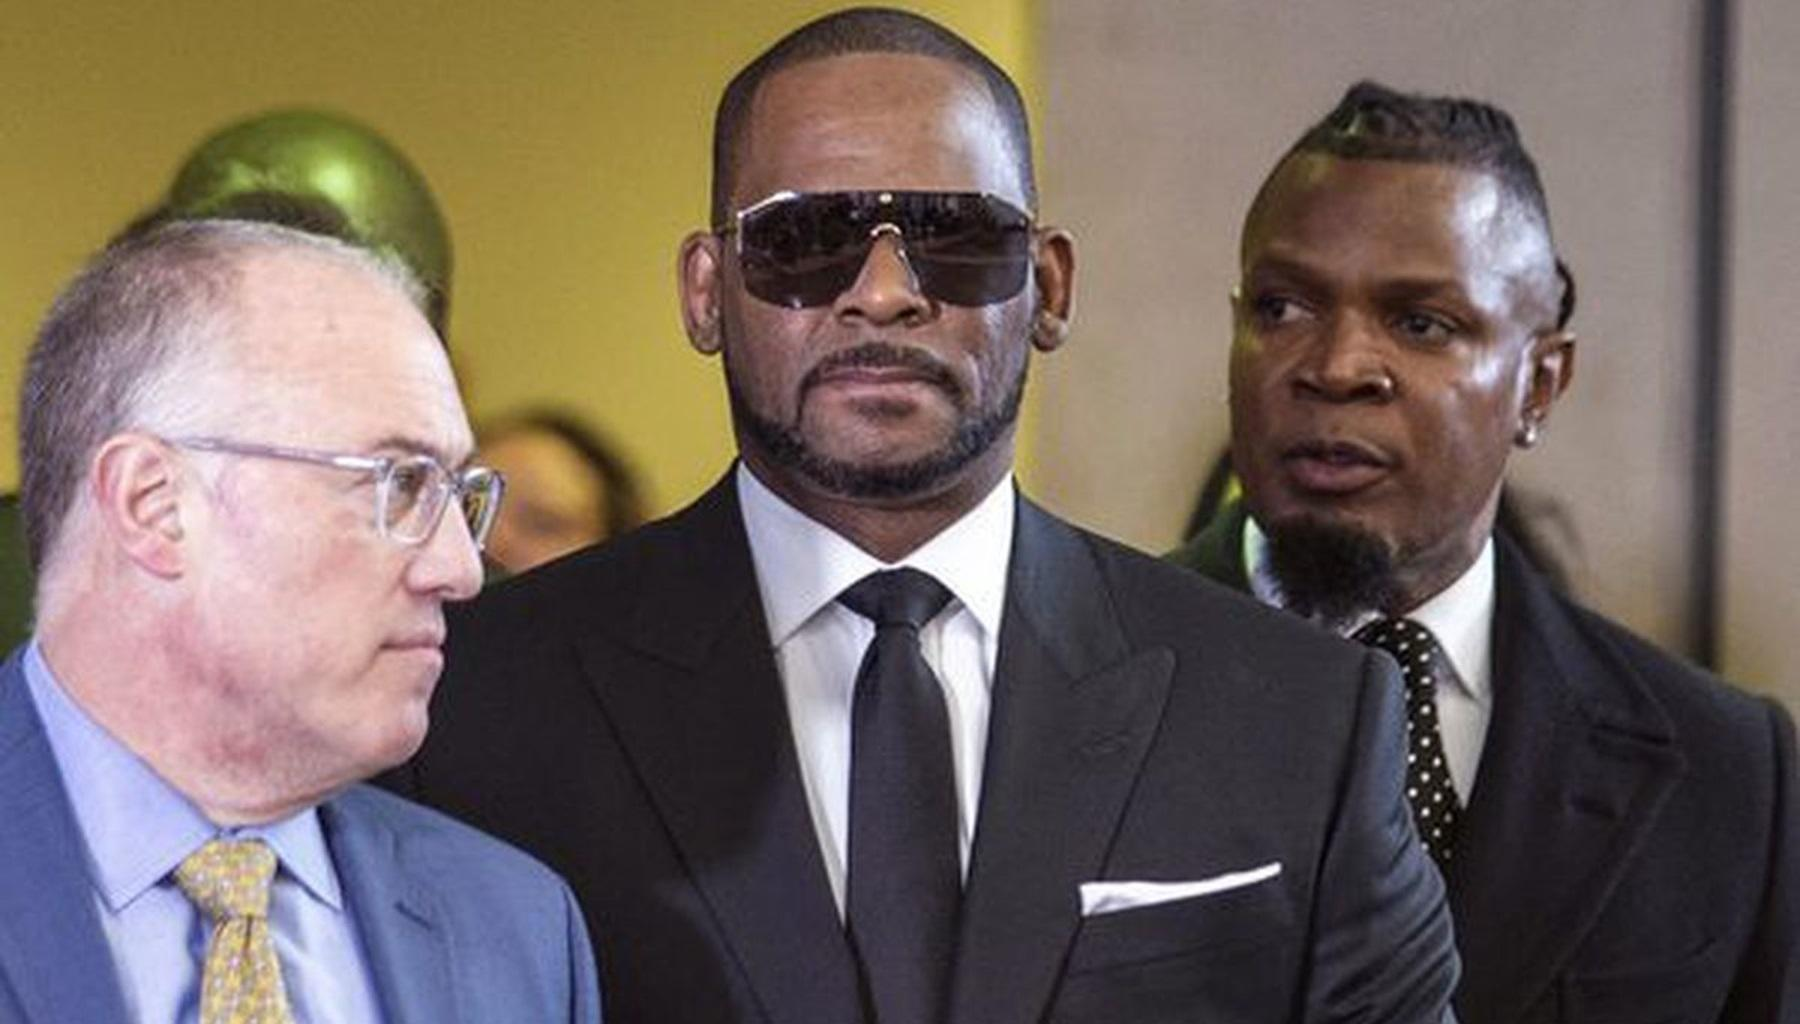 R. Kelly Accused Of A New Crime -- R&B Star Allegedly Attempted To Blackmail His Victims By Doing This